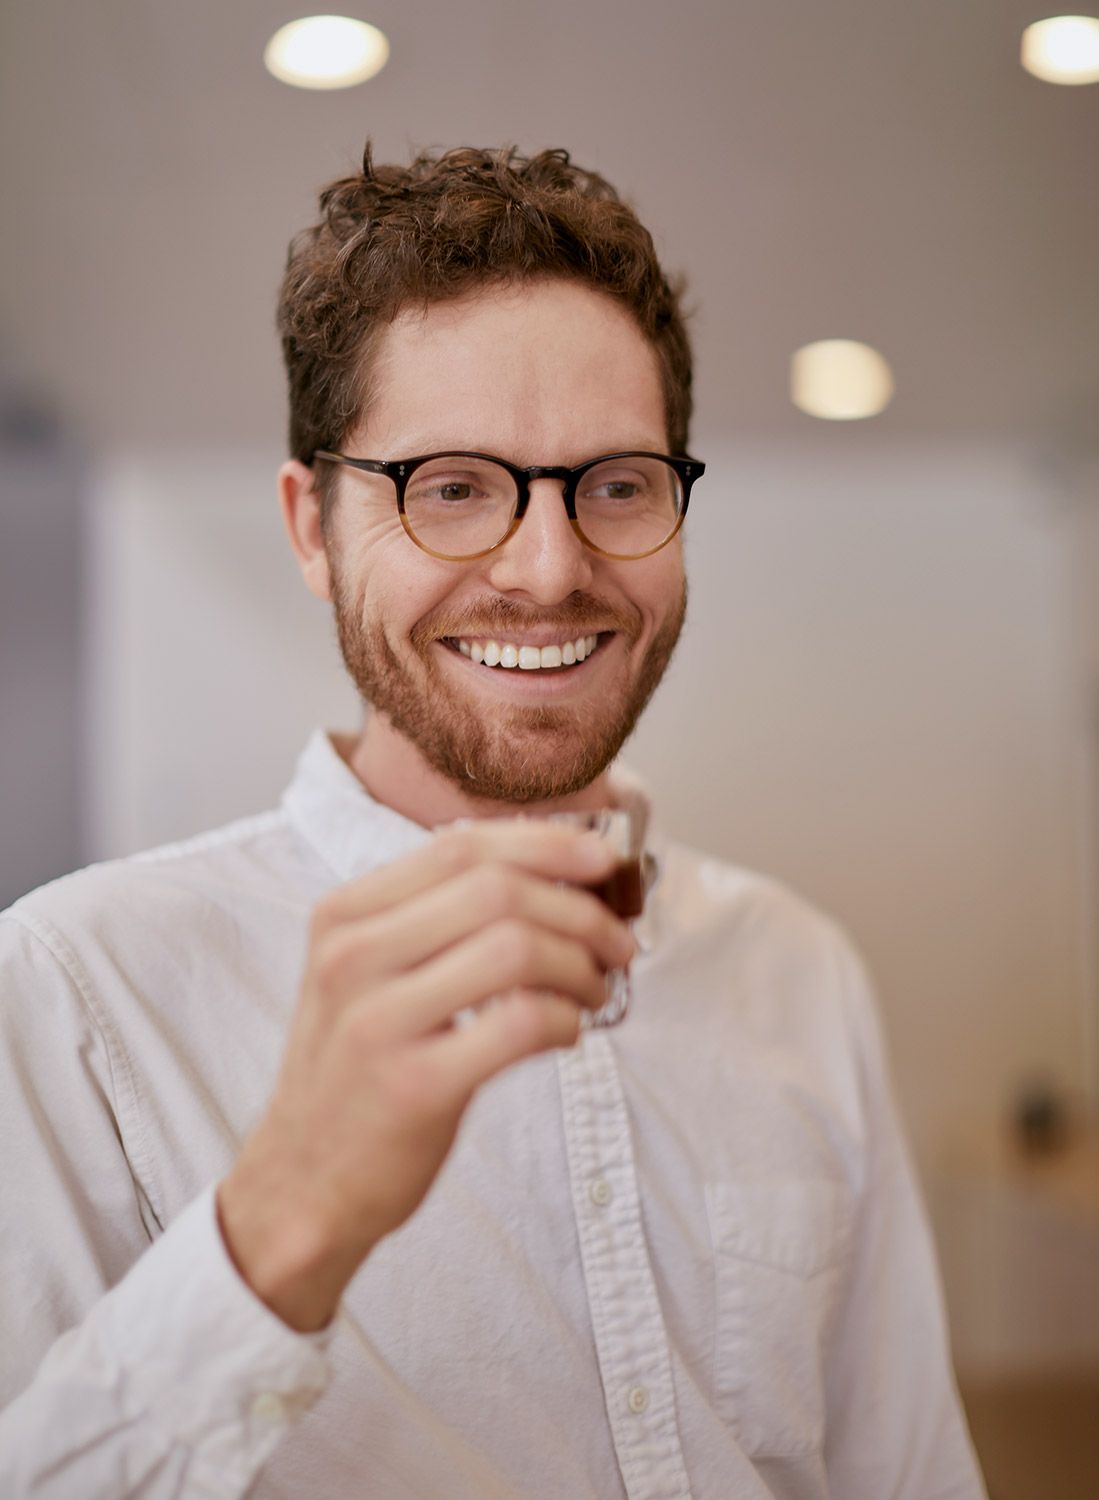 smiling-barista-with-glass-drinking-coffee.jpg